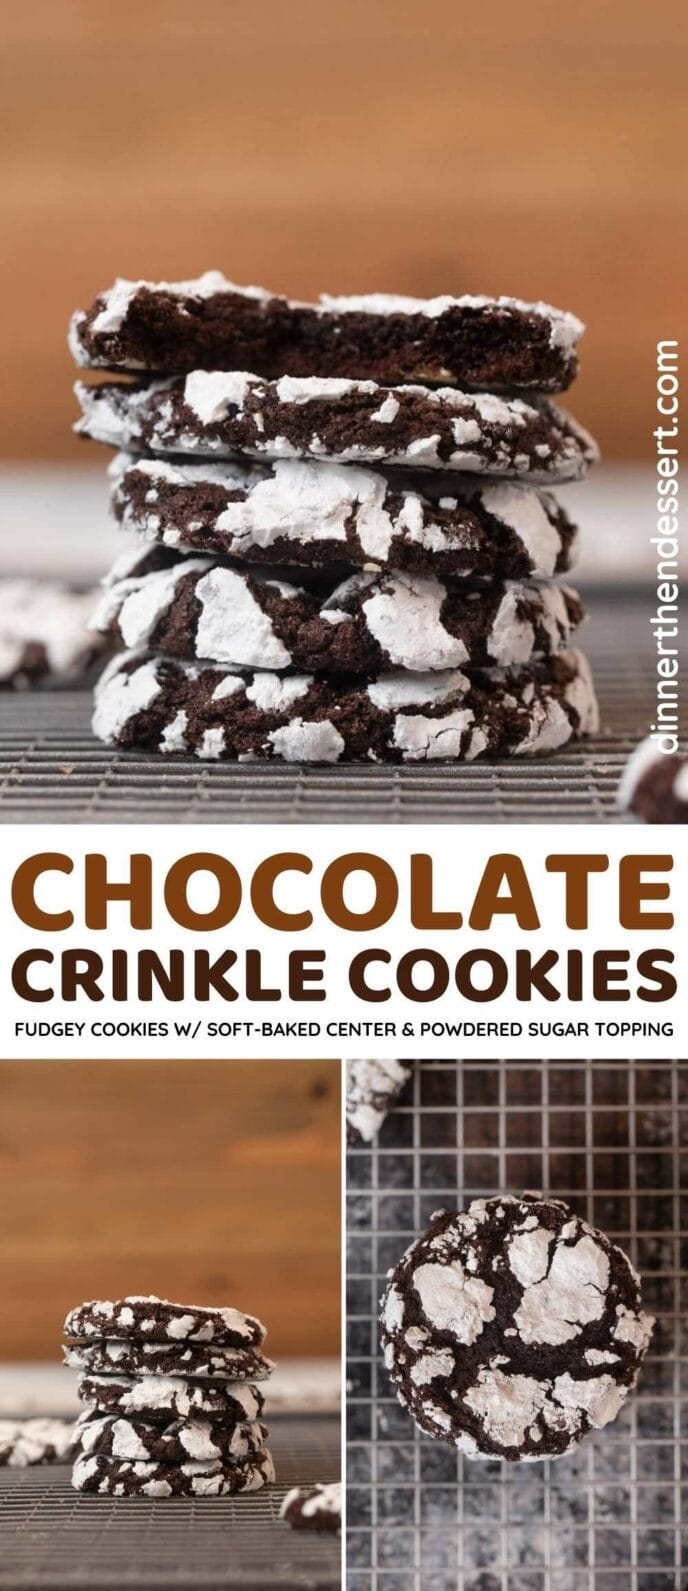 Chocolate Crinkle Cookies collage